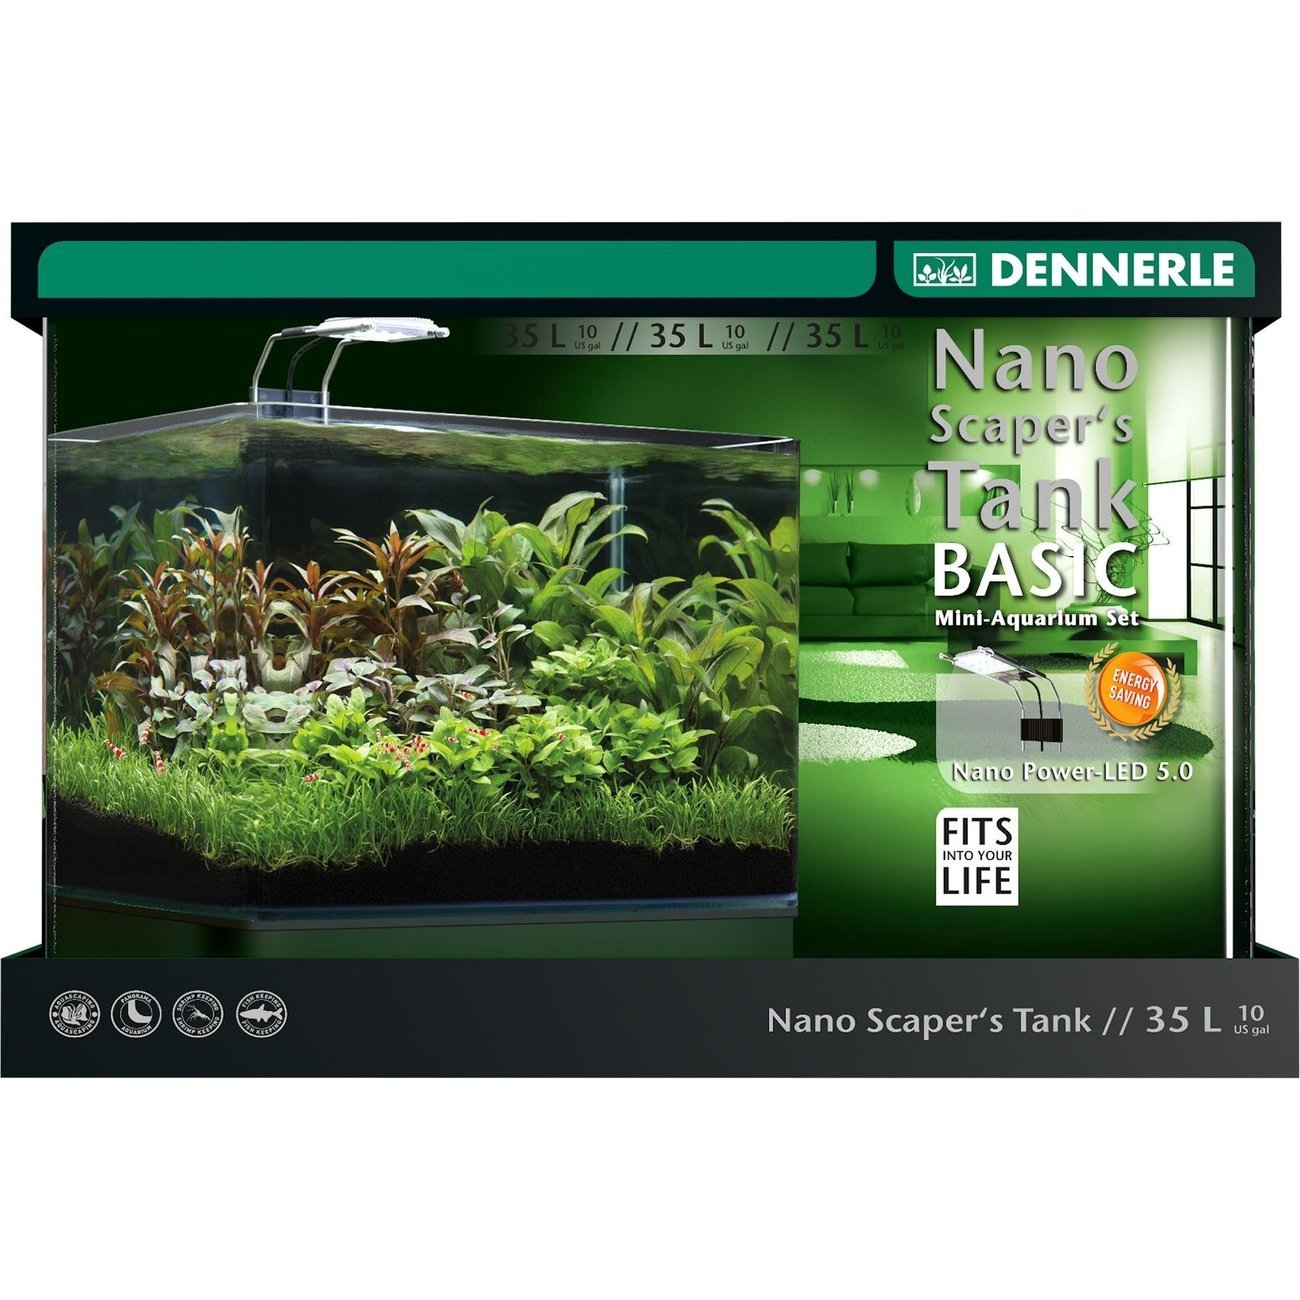 Dennerle Nano Scapers Tank Basic PowerLED 5.0 Preview Image